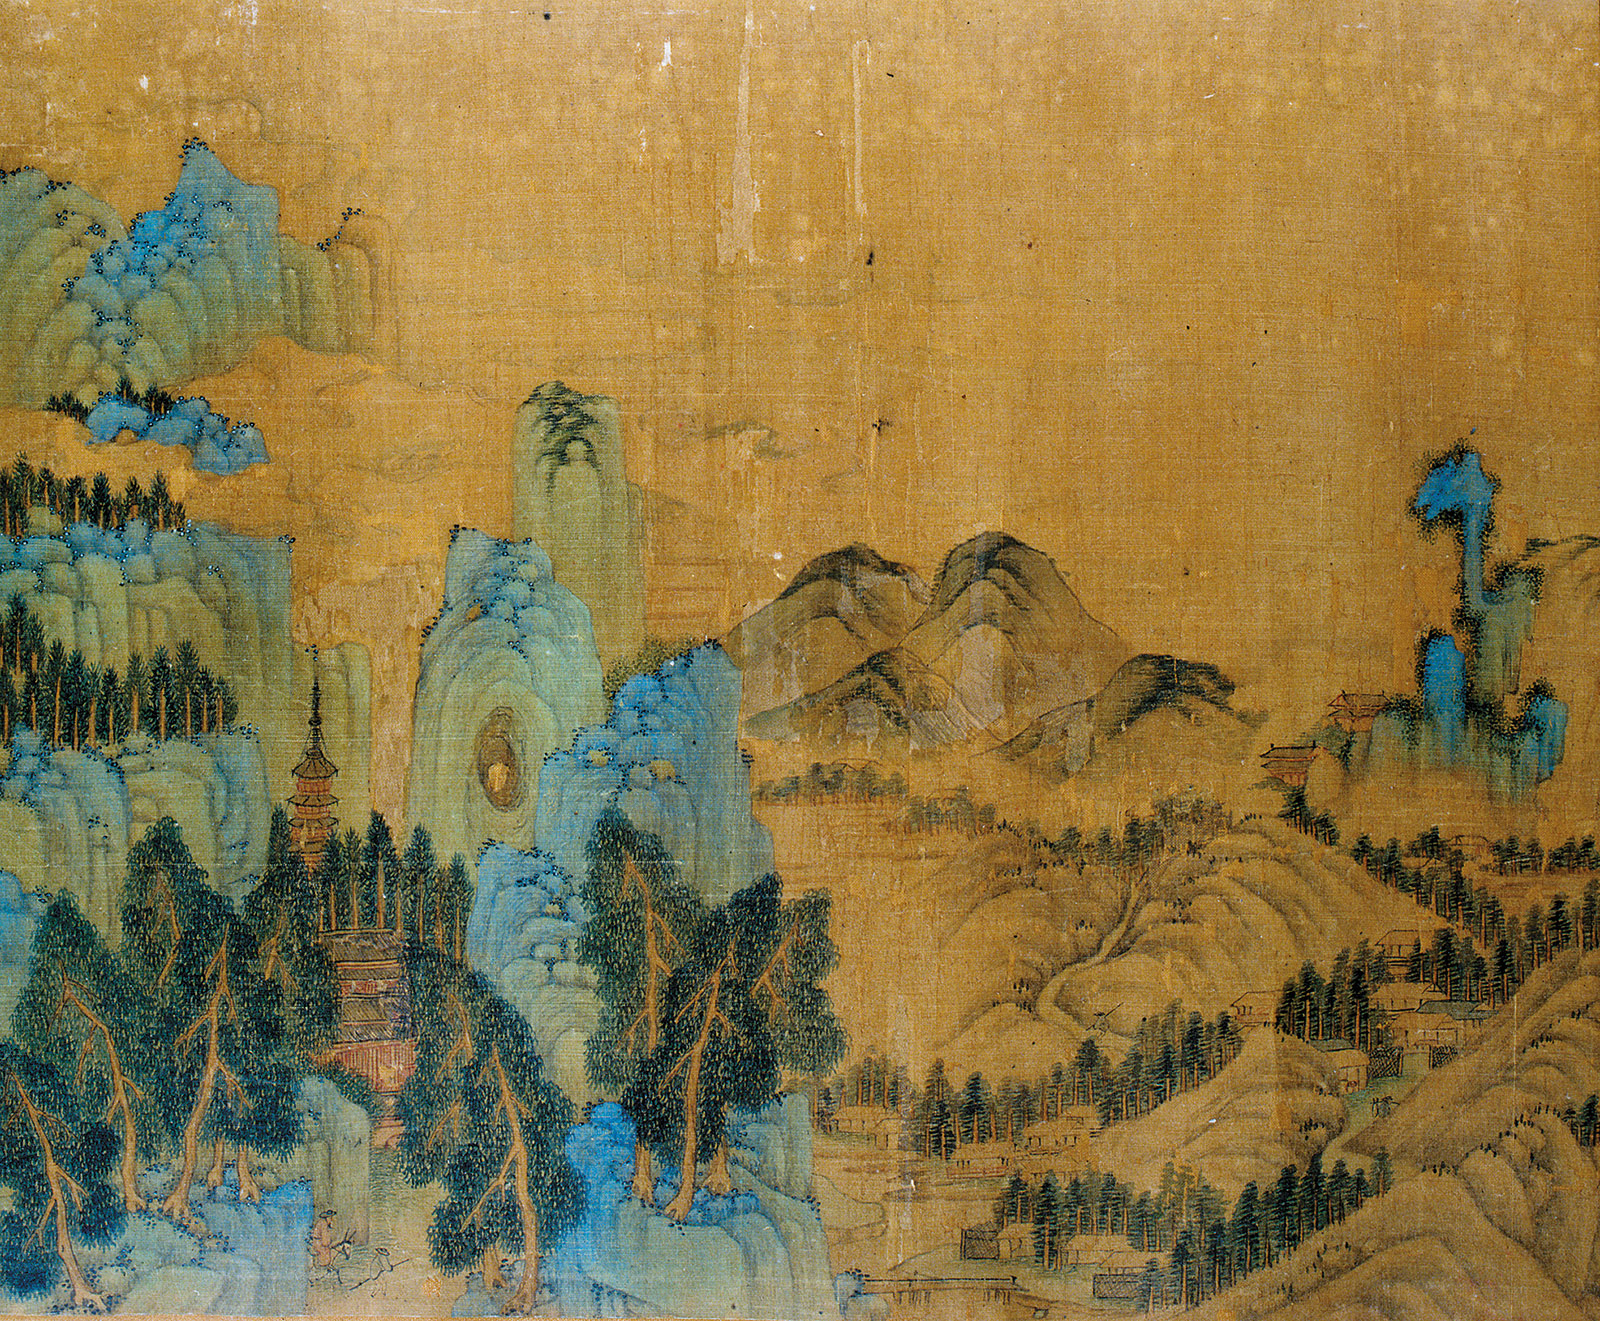 Landscape painting, Tang dynasty era